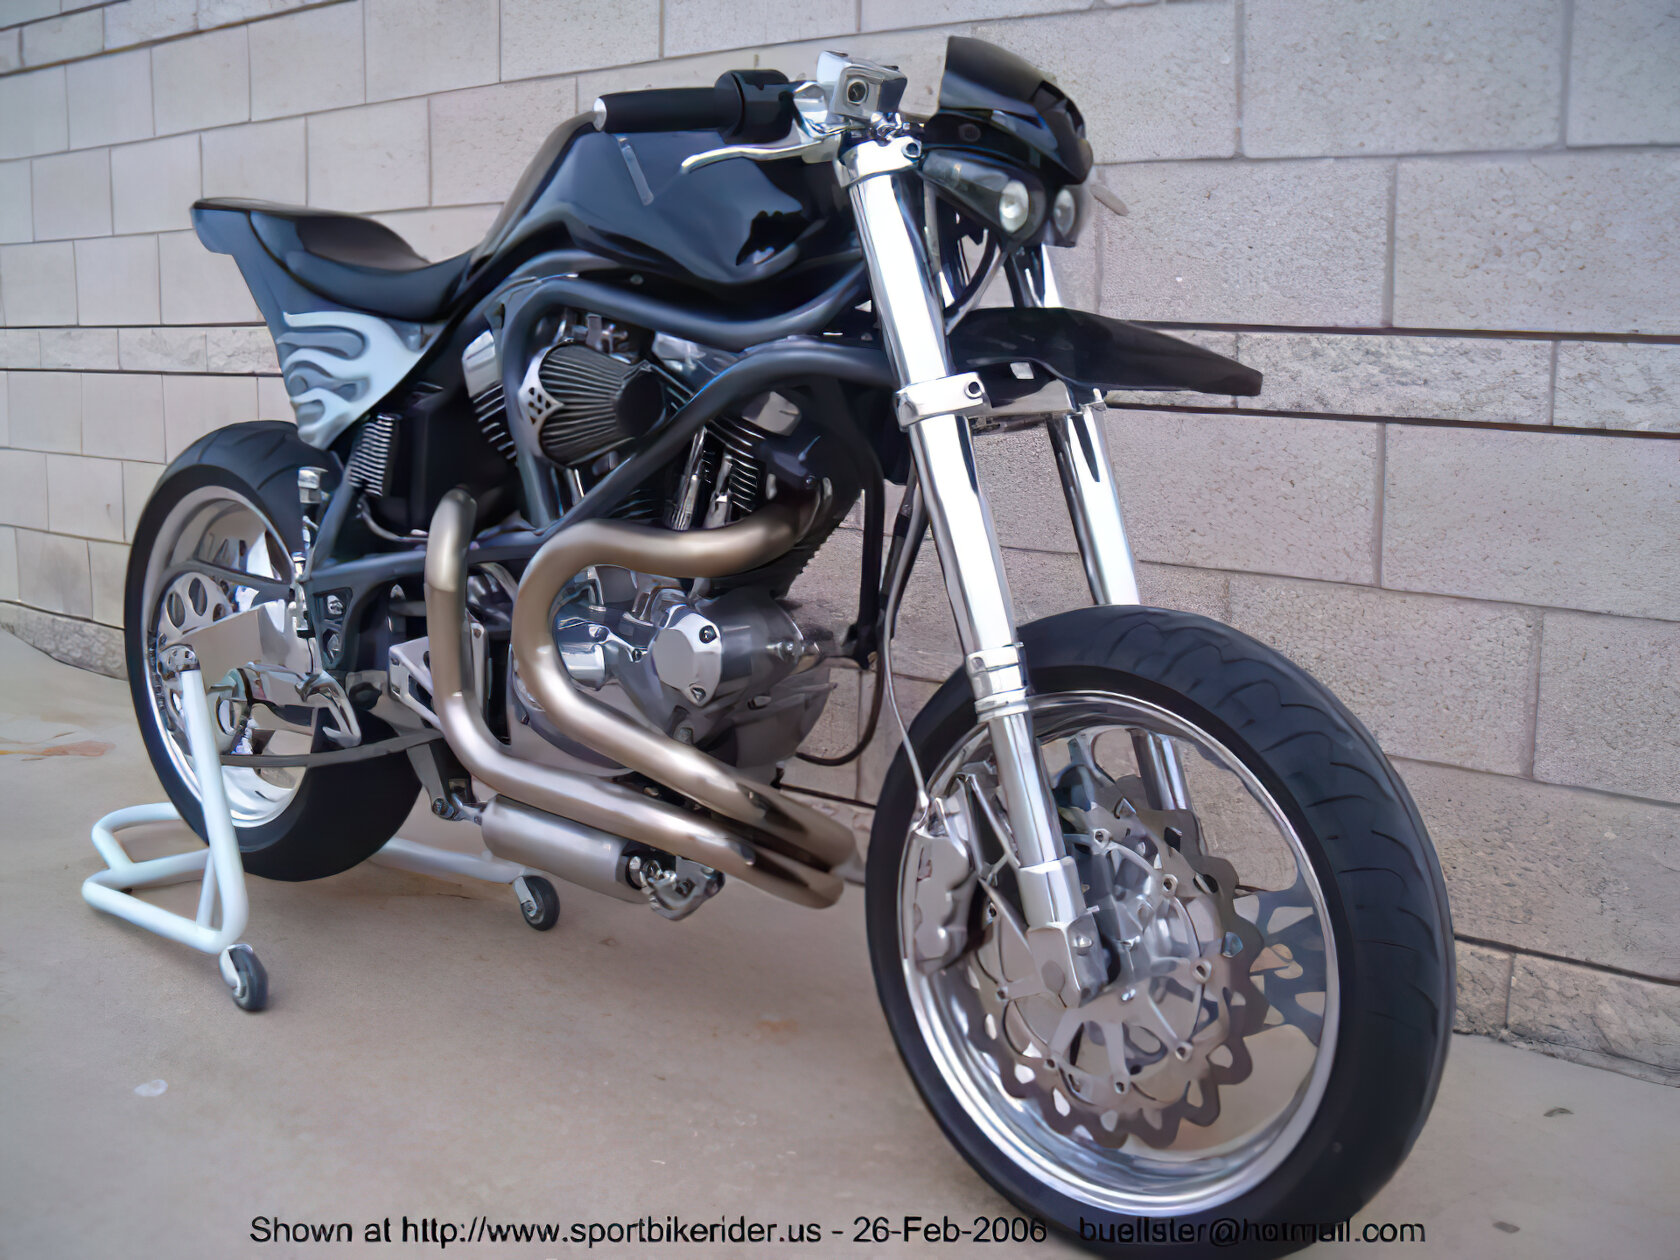 Buell S1/S2/S3 - ID: 97202